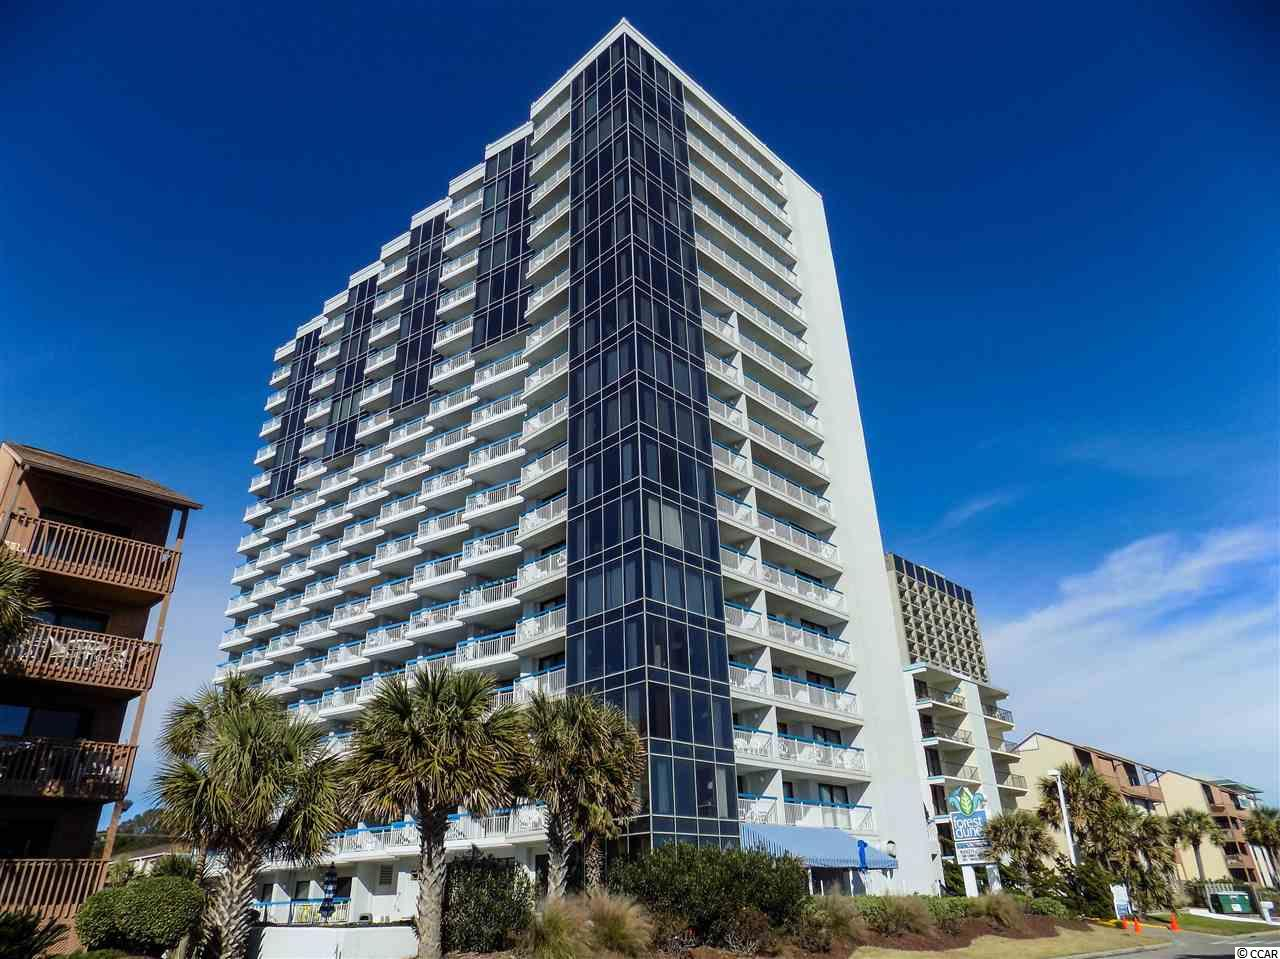 Ocean View Condo in Forest Dunes : Myrtle Beach South Carolina